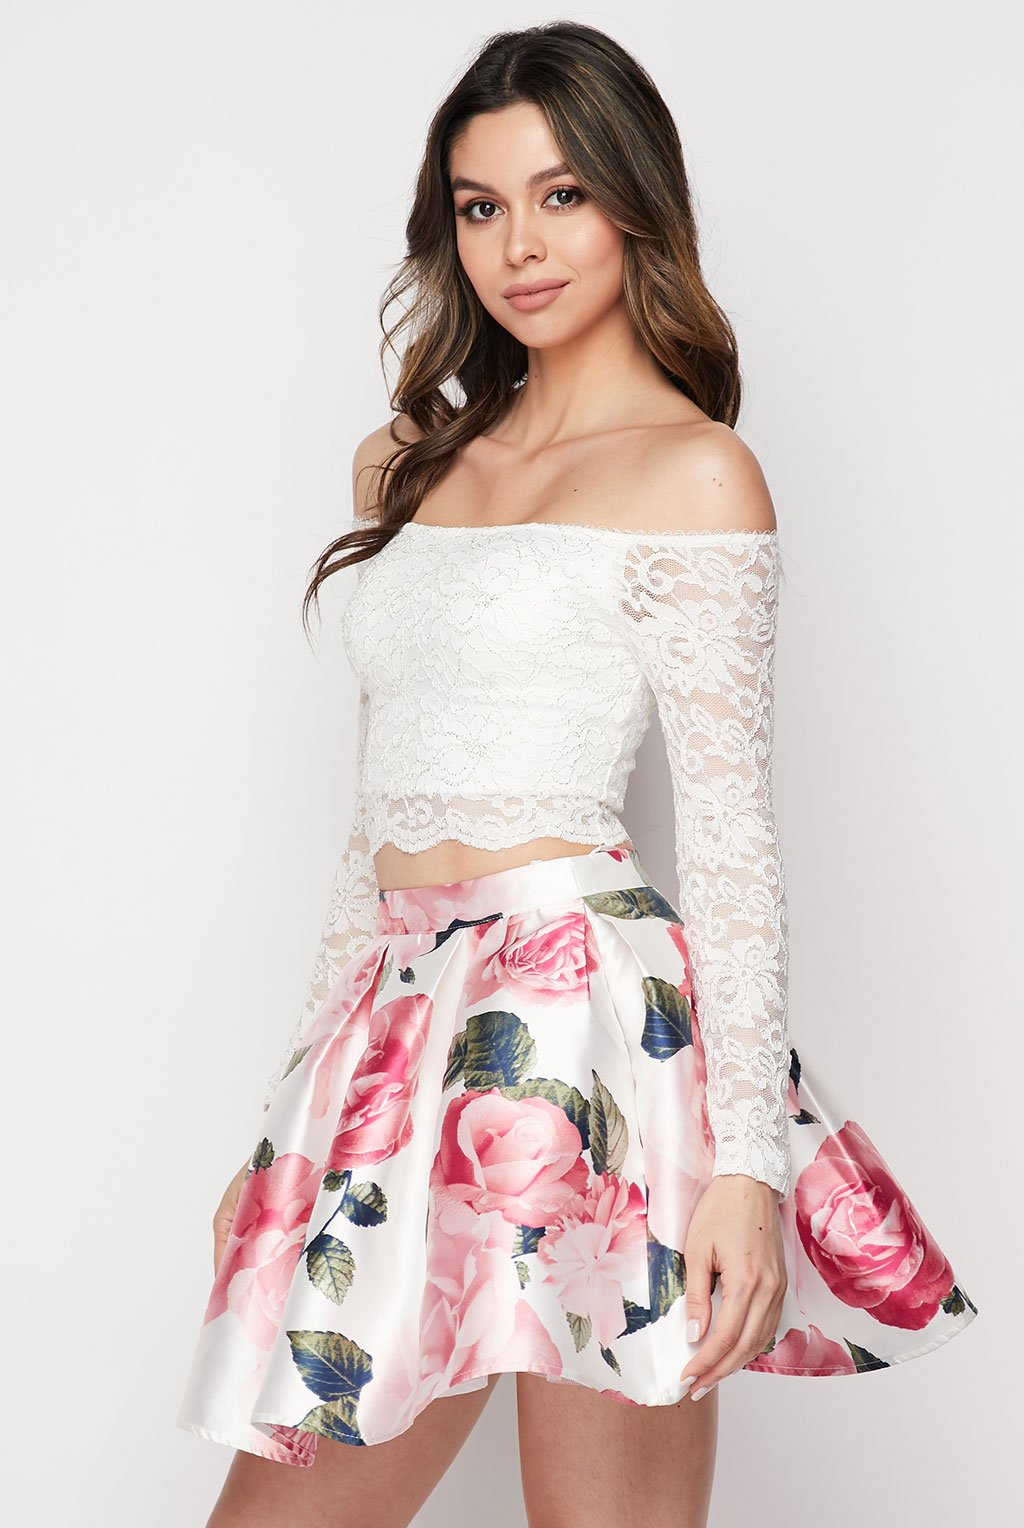 Teeze Me | Two-Piece Lace and Floral Dress | White/Blush